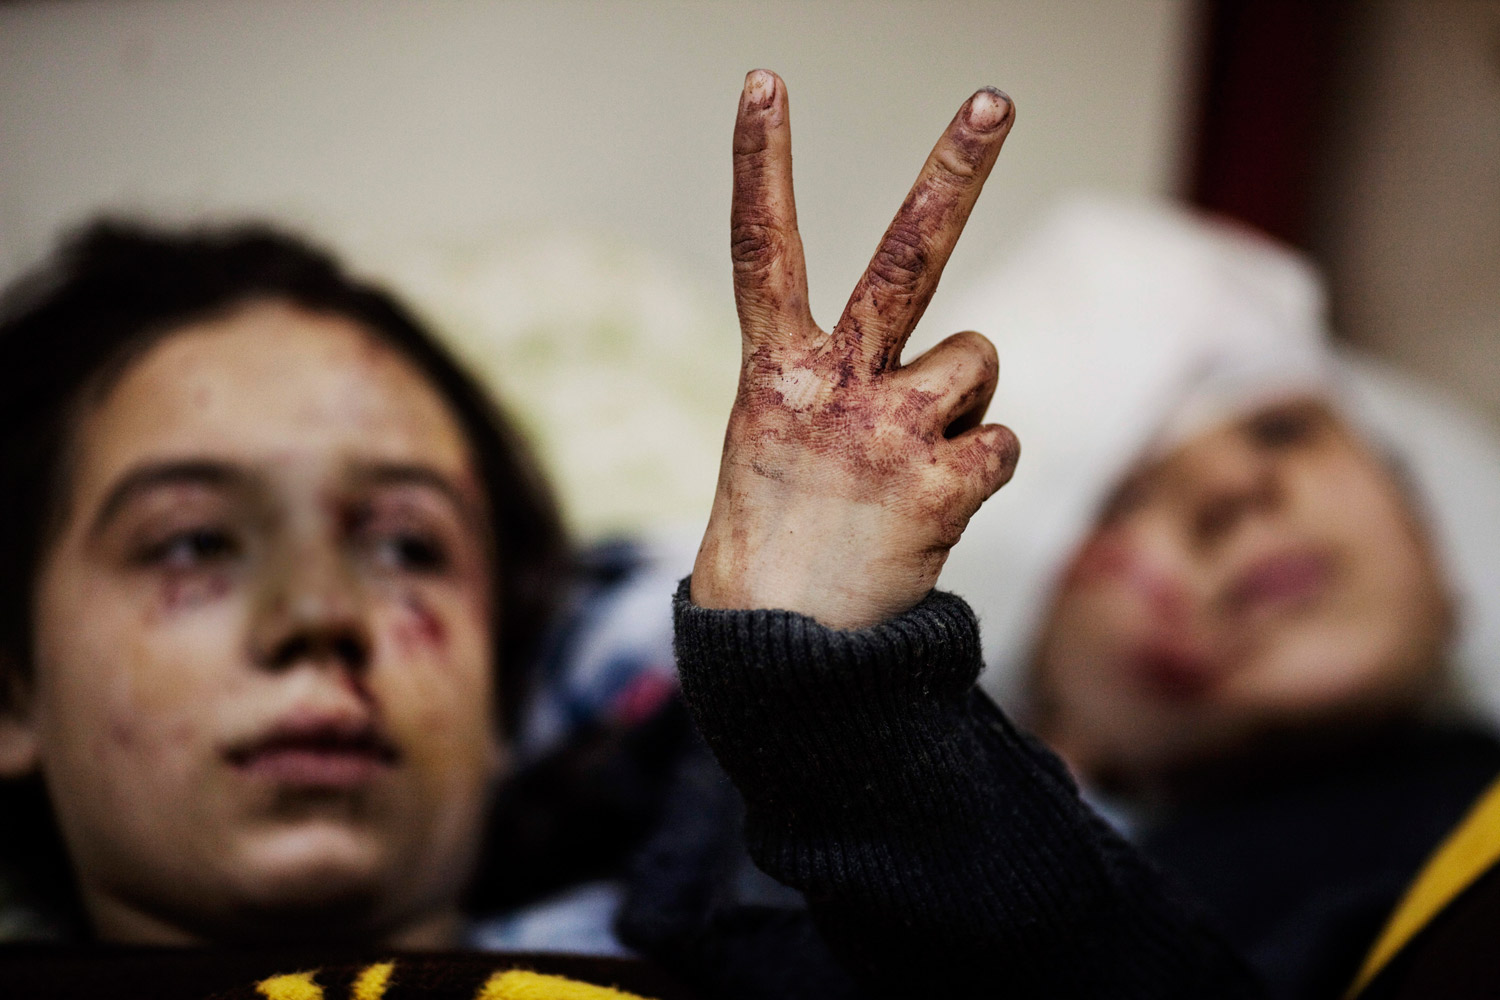 March 10, 2012. Hana, 12, flashes the victory sign next to her sister Eva, 13, as they recover from severe injuries after the Syrian Army shelled their house in Idlib, north Syria. Their father and two siblings were killed after their home was shelled.